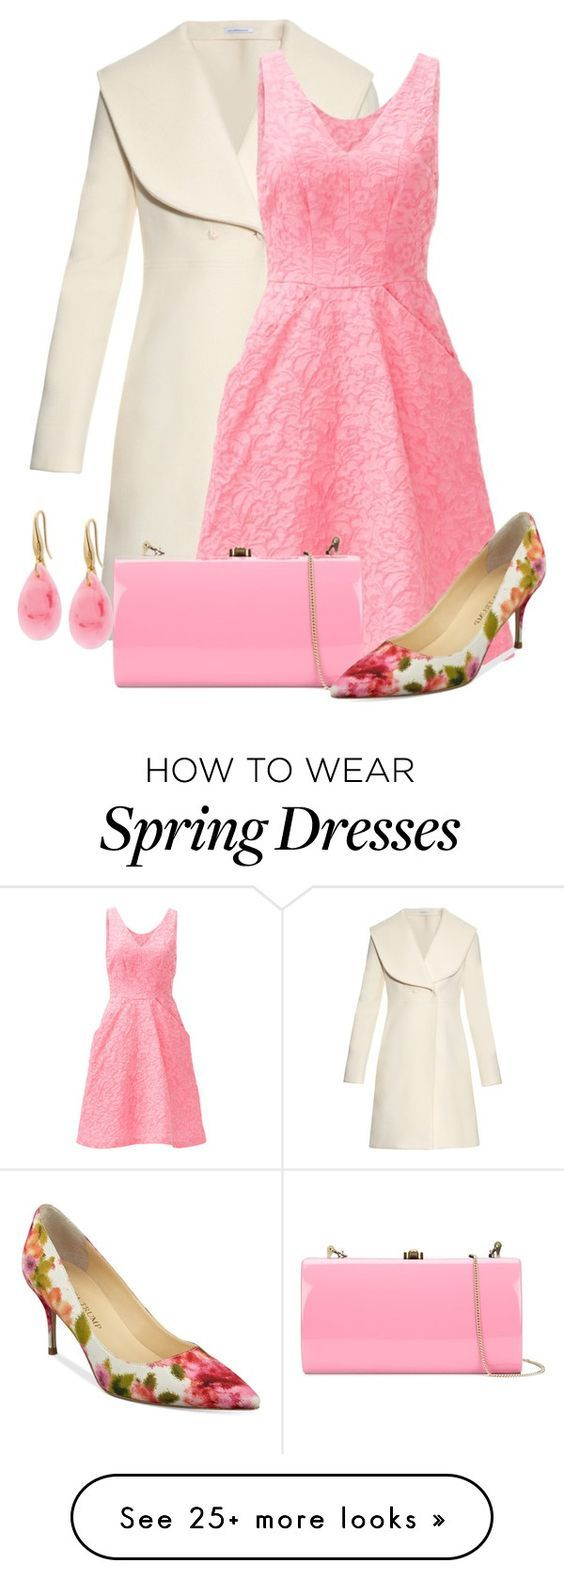 """""""Spring Coat"""" by cris-1121 on Polyvore featuring J.W. Anderson, YOANA BARASCHI, Rocio, Ivanka Trump and GUESS"""